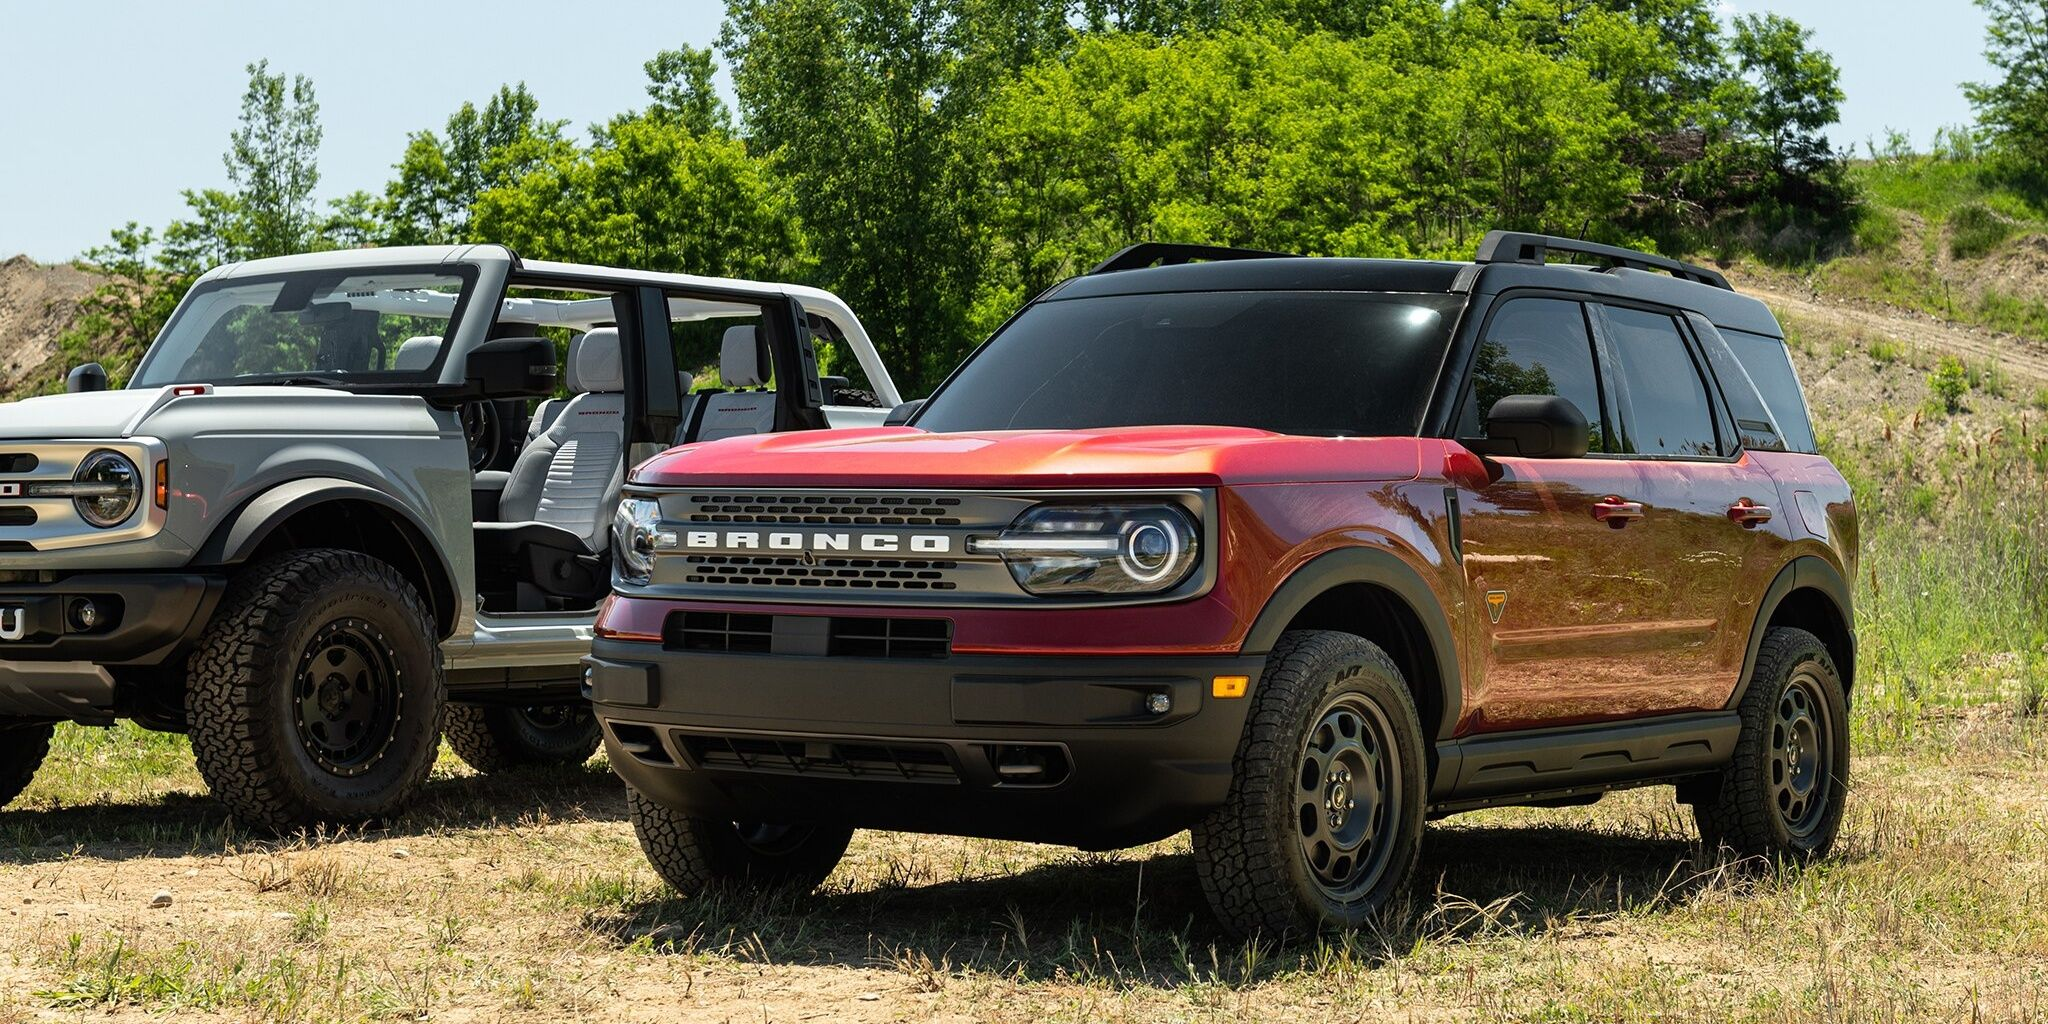 10 Things You Didn't Know About The New Ford Bronco | HotCars